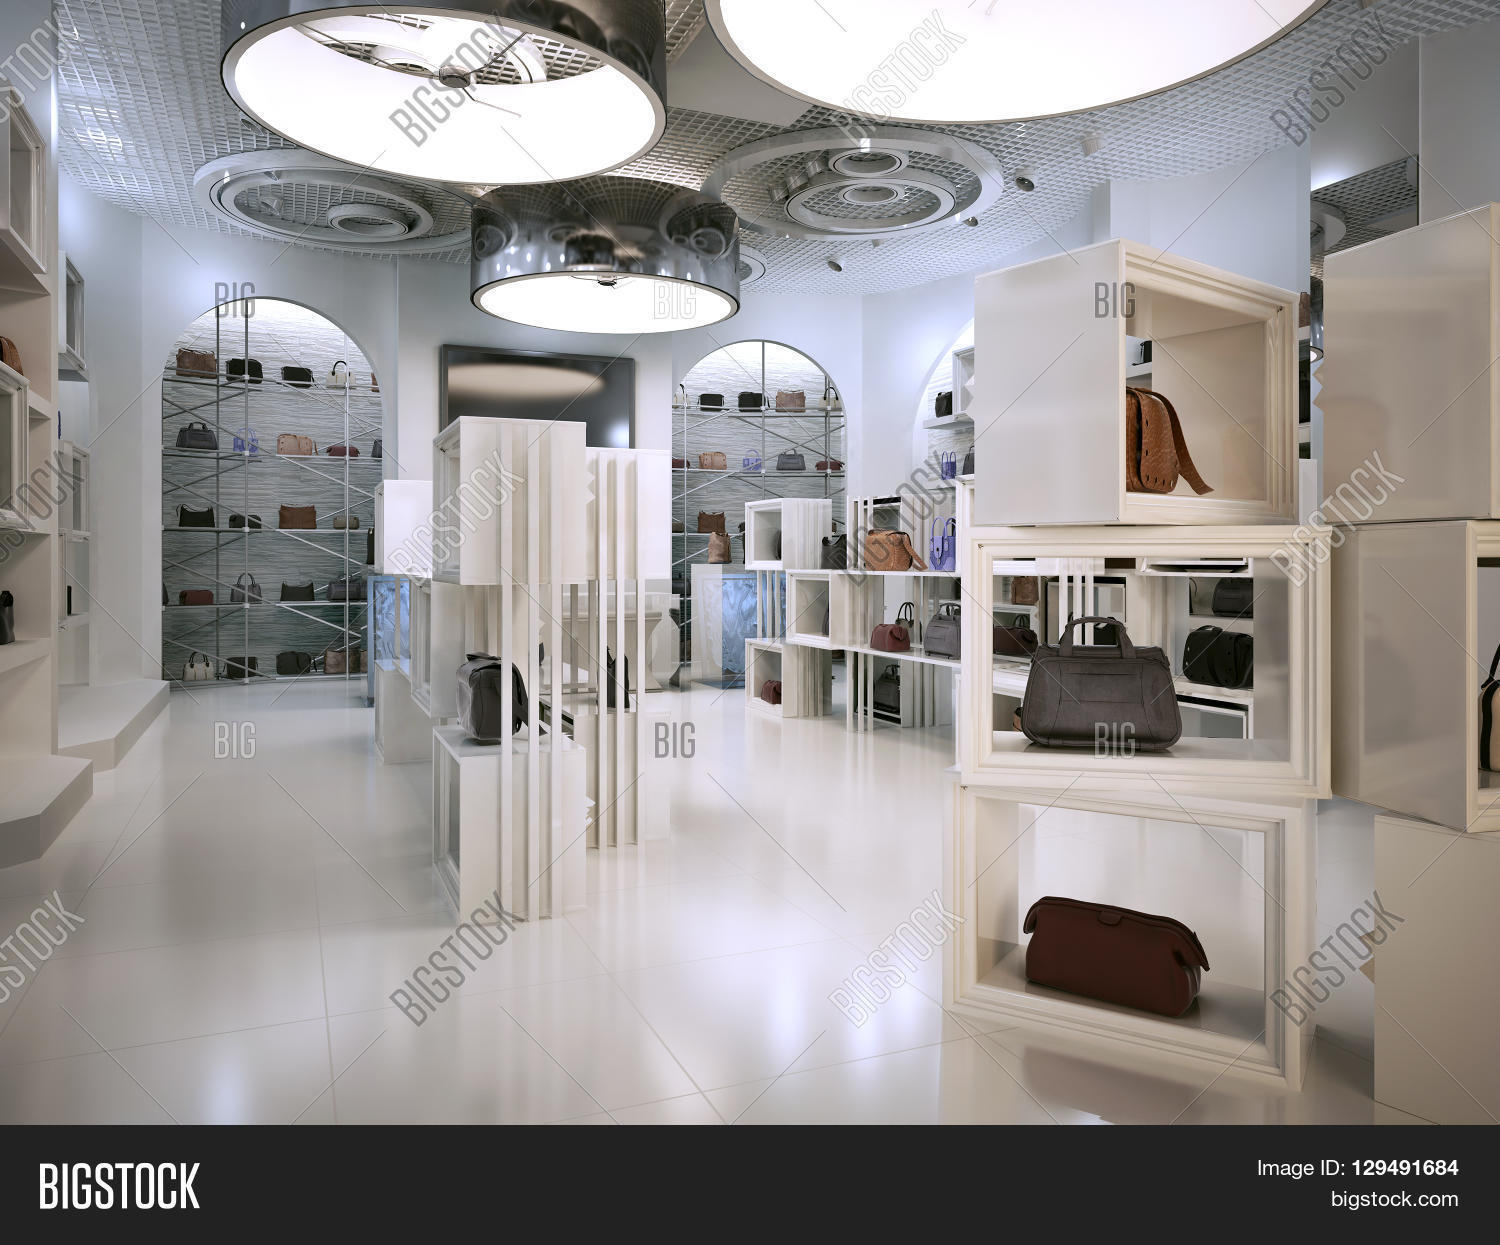 Luxury Store Interior Design Art Deco Style With Hints Of Contemporary White